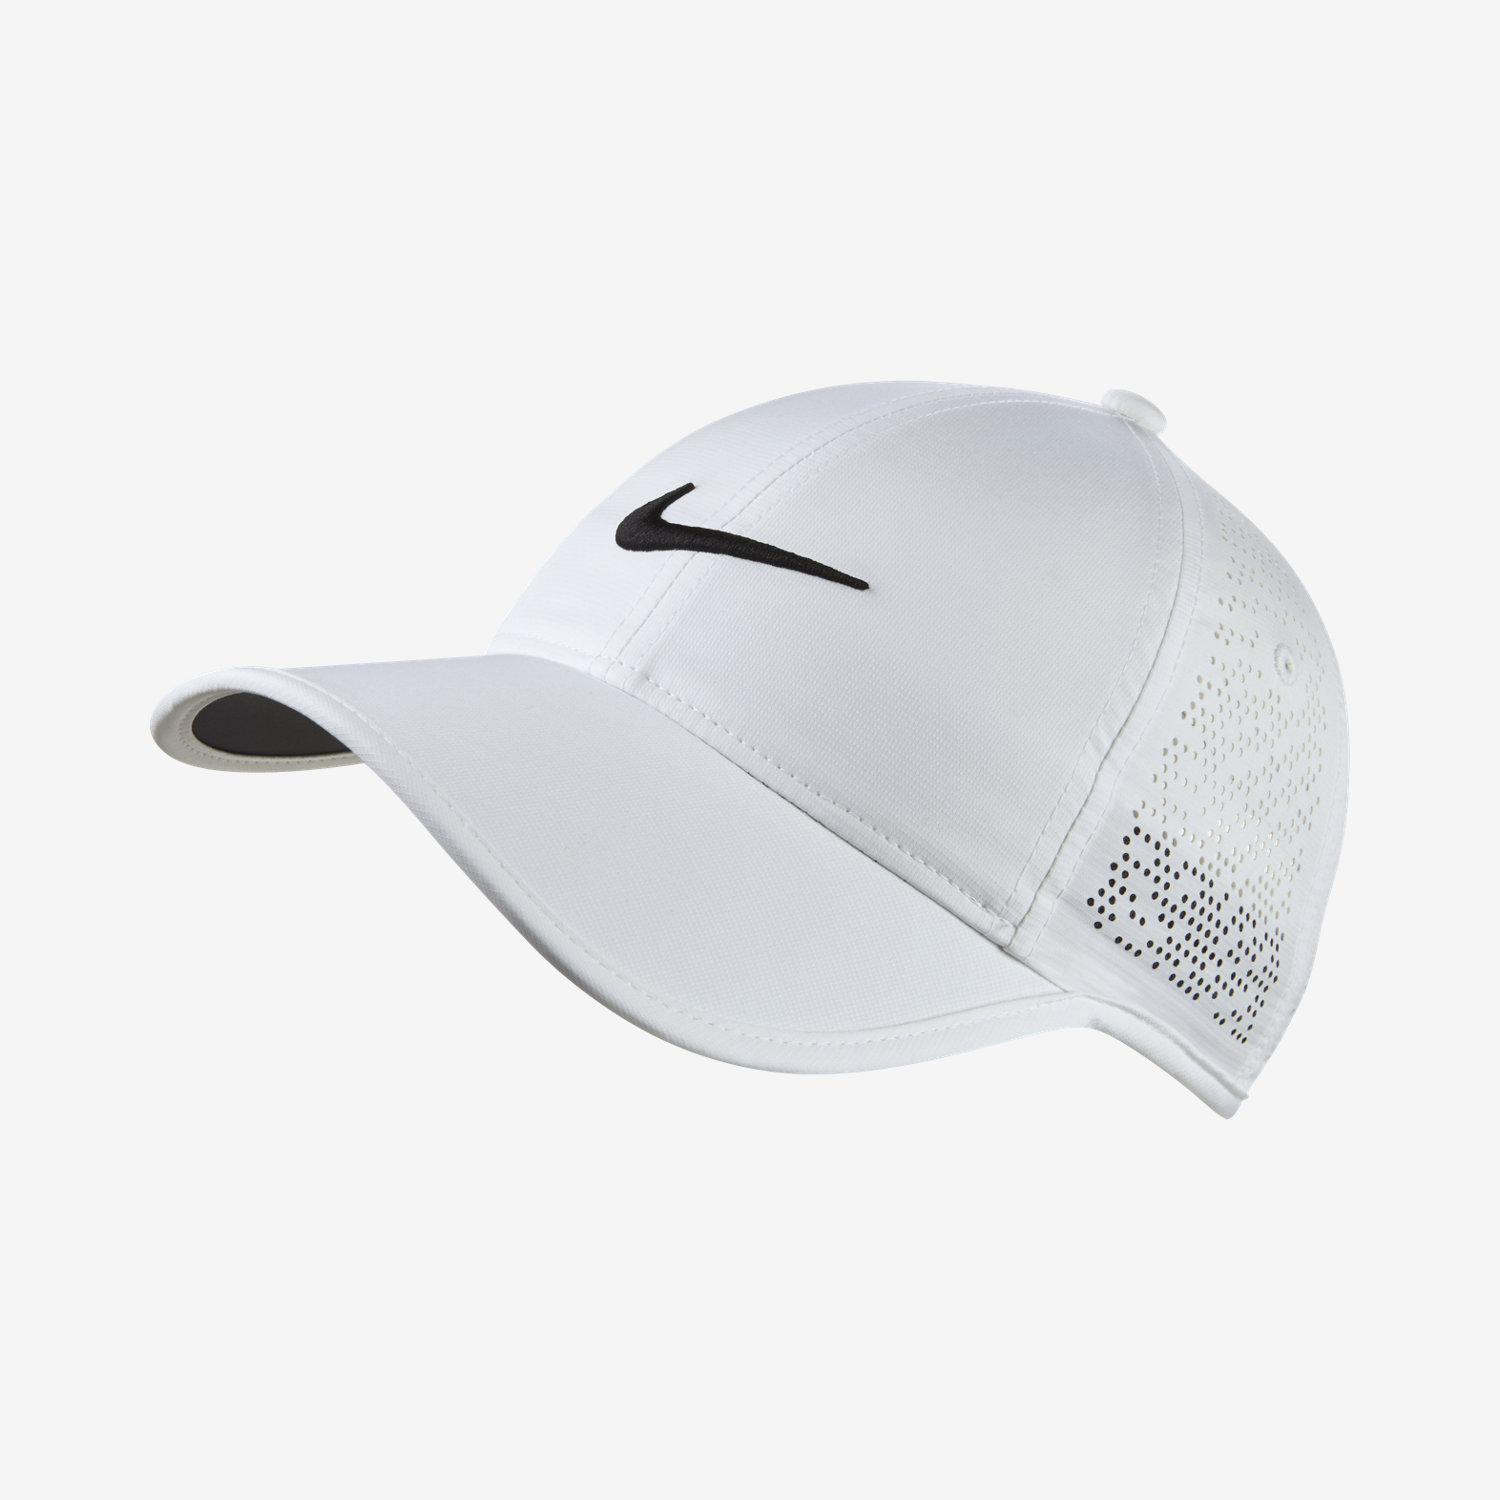 9bf793c688e Nike Perforated Women s Adjustable Golf Hat. Nike.com